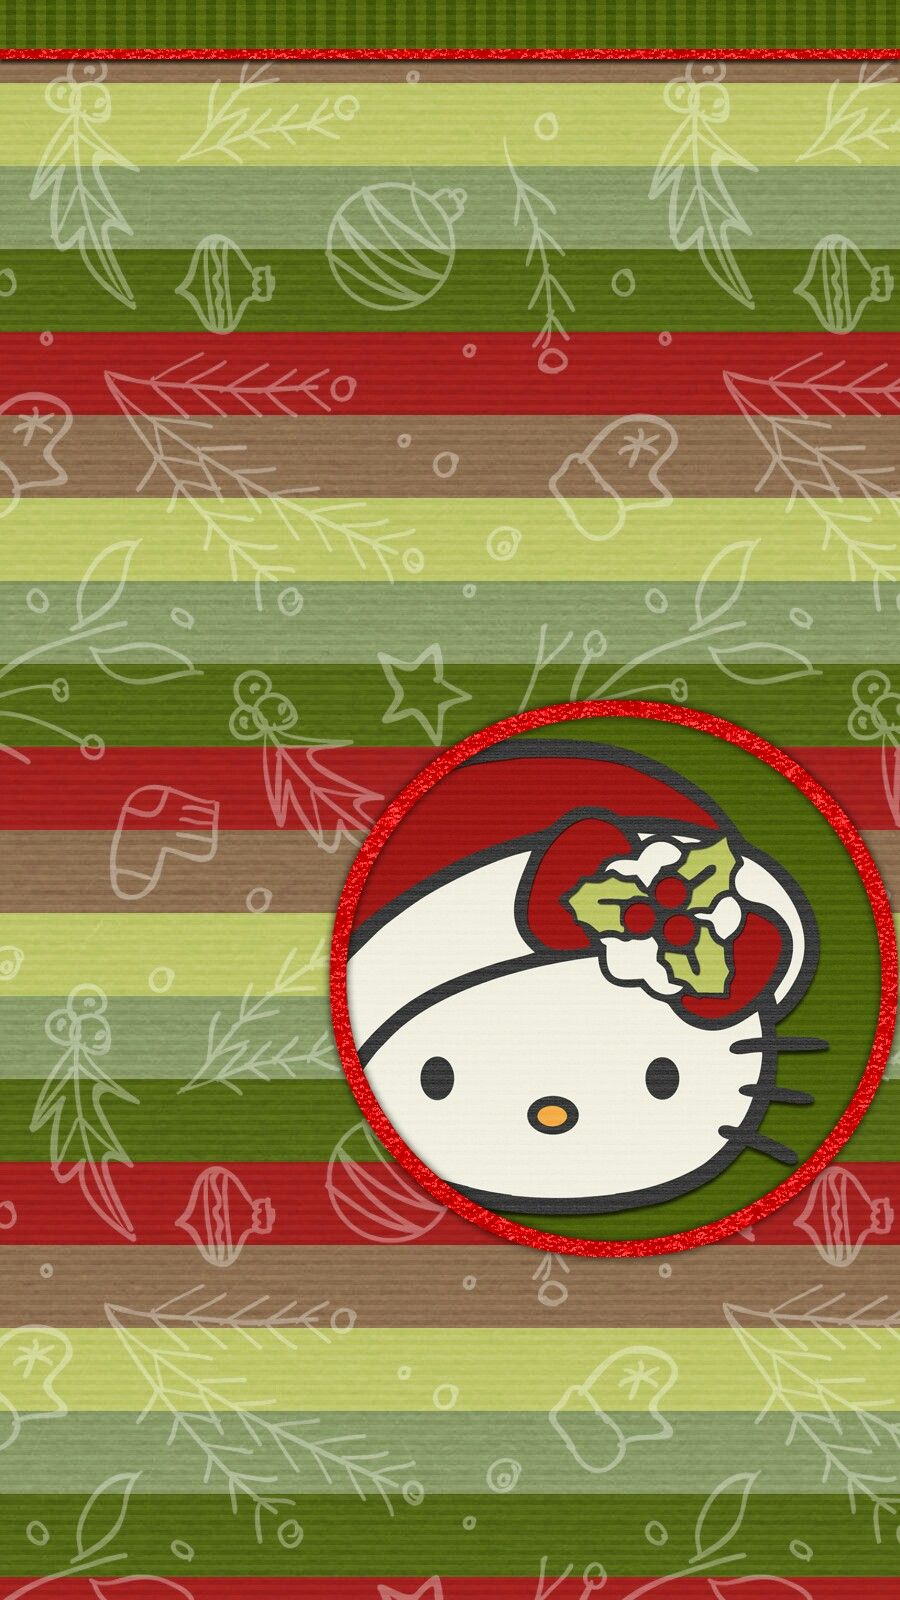 Christmas wallpaper iphone android happy holiday hellokitty christmas wallpaper iphone android happy holiday hellokitty voltagebd Image collections